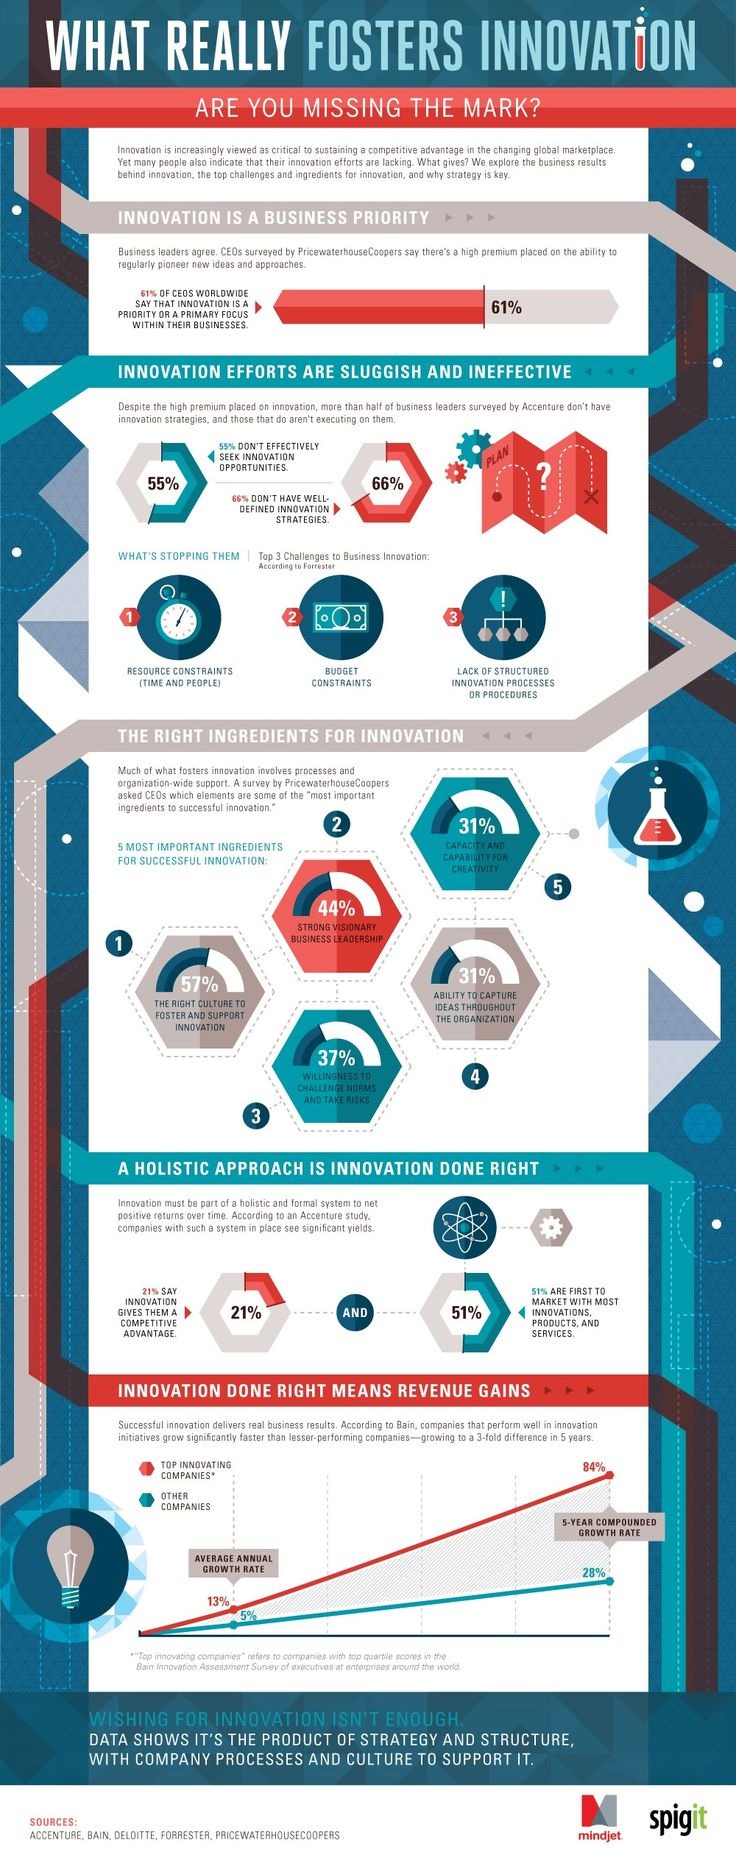 What Really Fosters Innovation (Infographic) The five most successful ingredients and culture is key